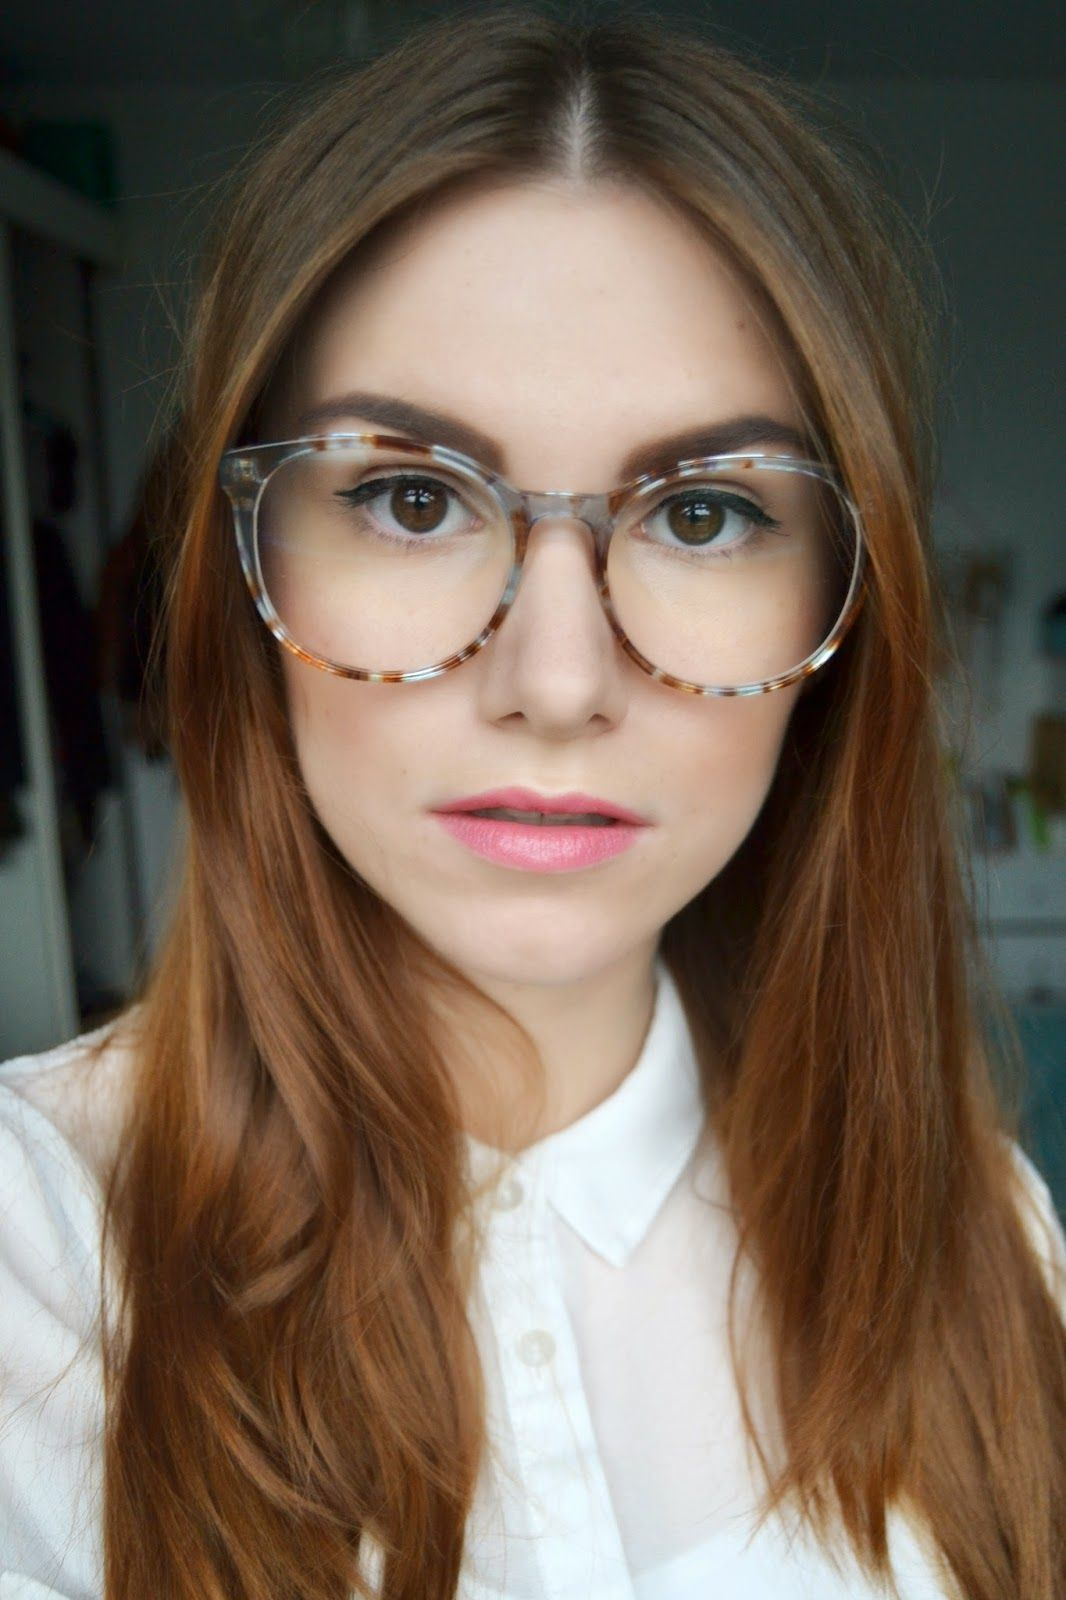 zosiarome ace and tate home try on glasses pinterest brille und stil. Black Bedroom Furniture Sets. Home Design Ideas